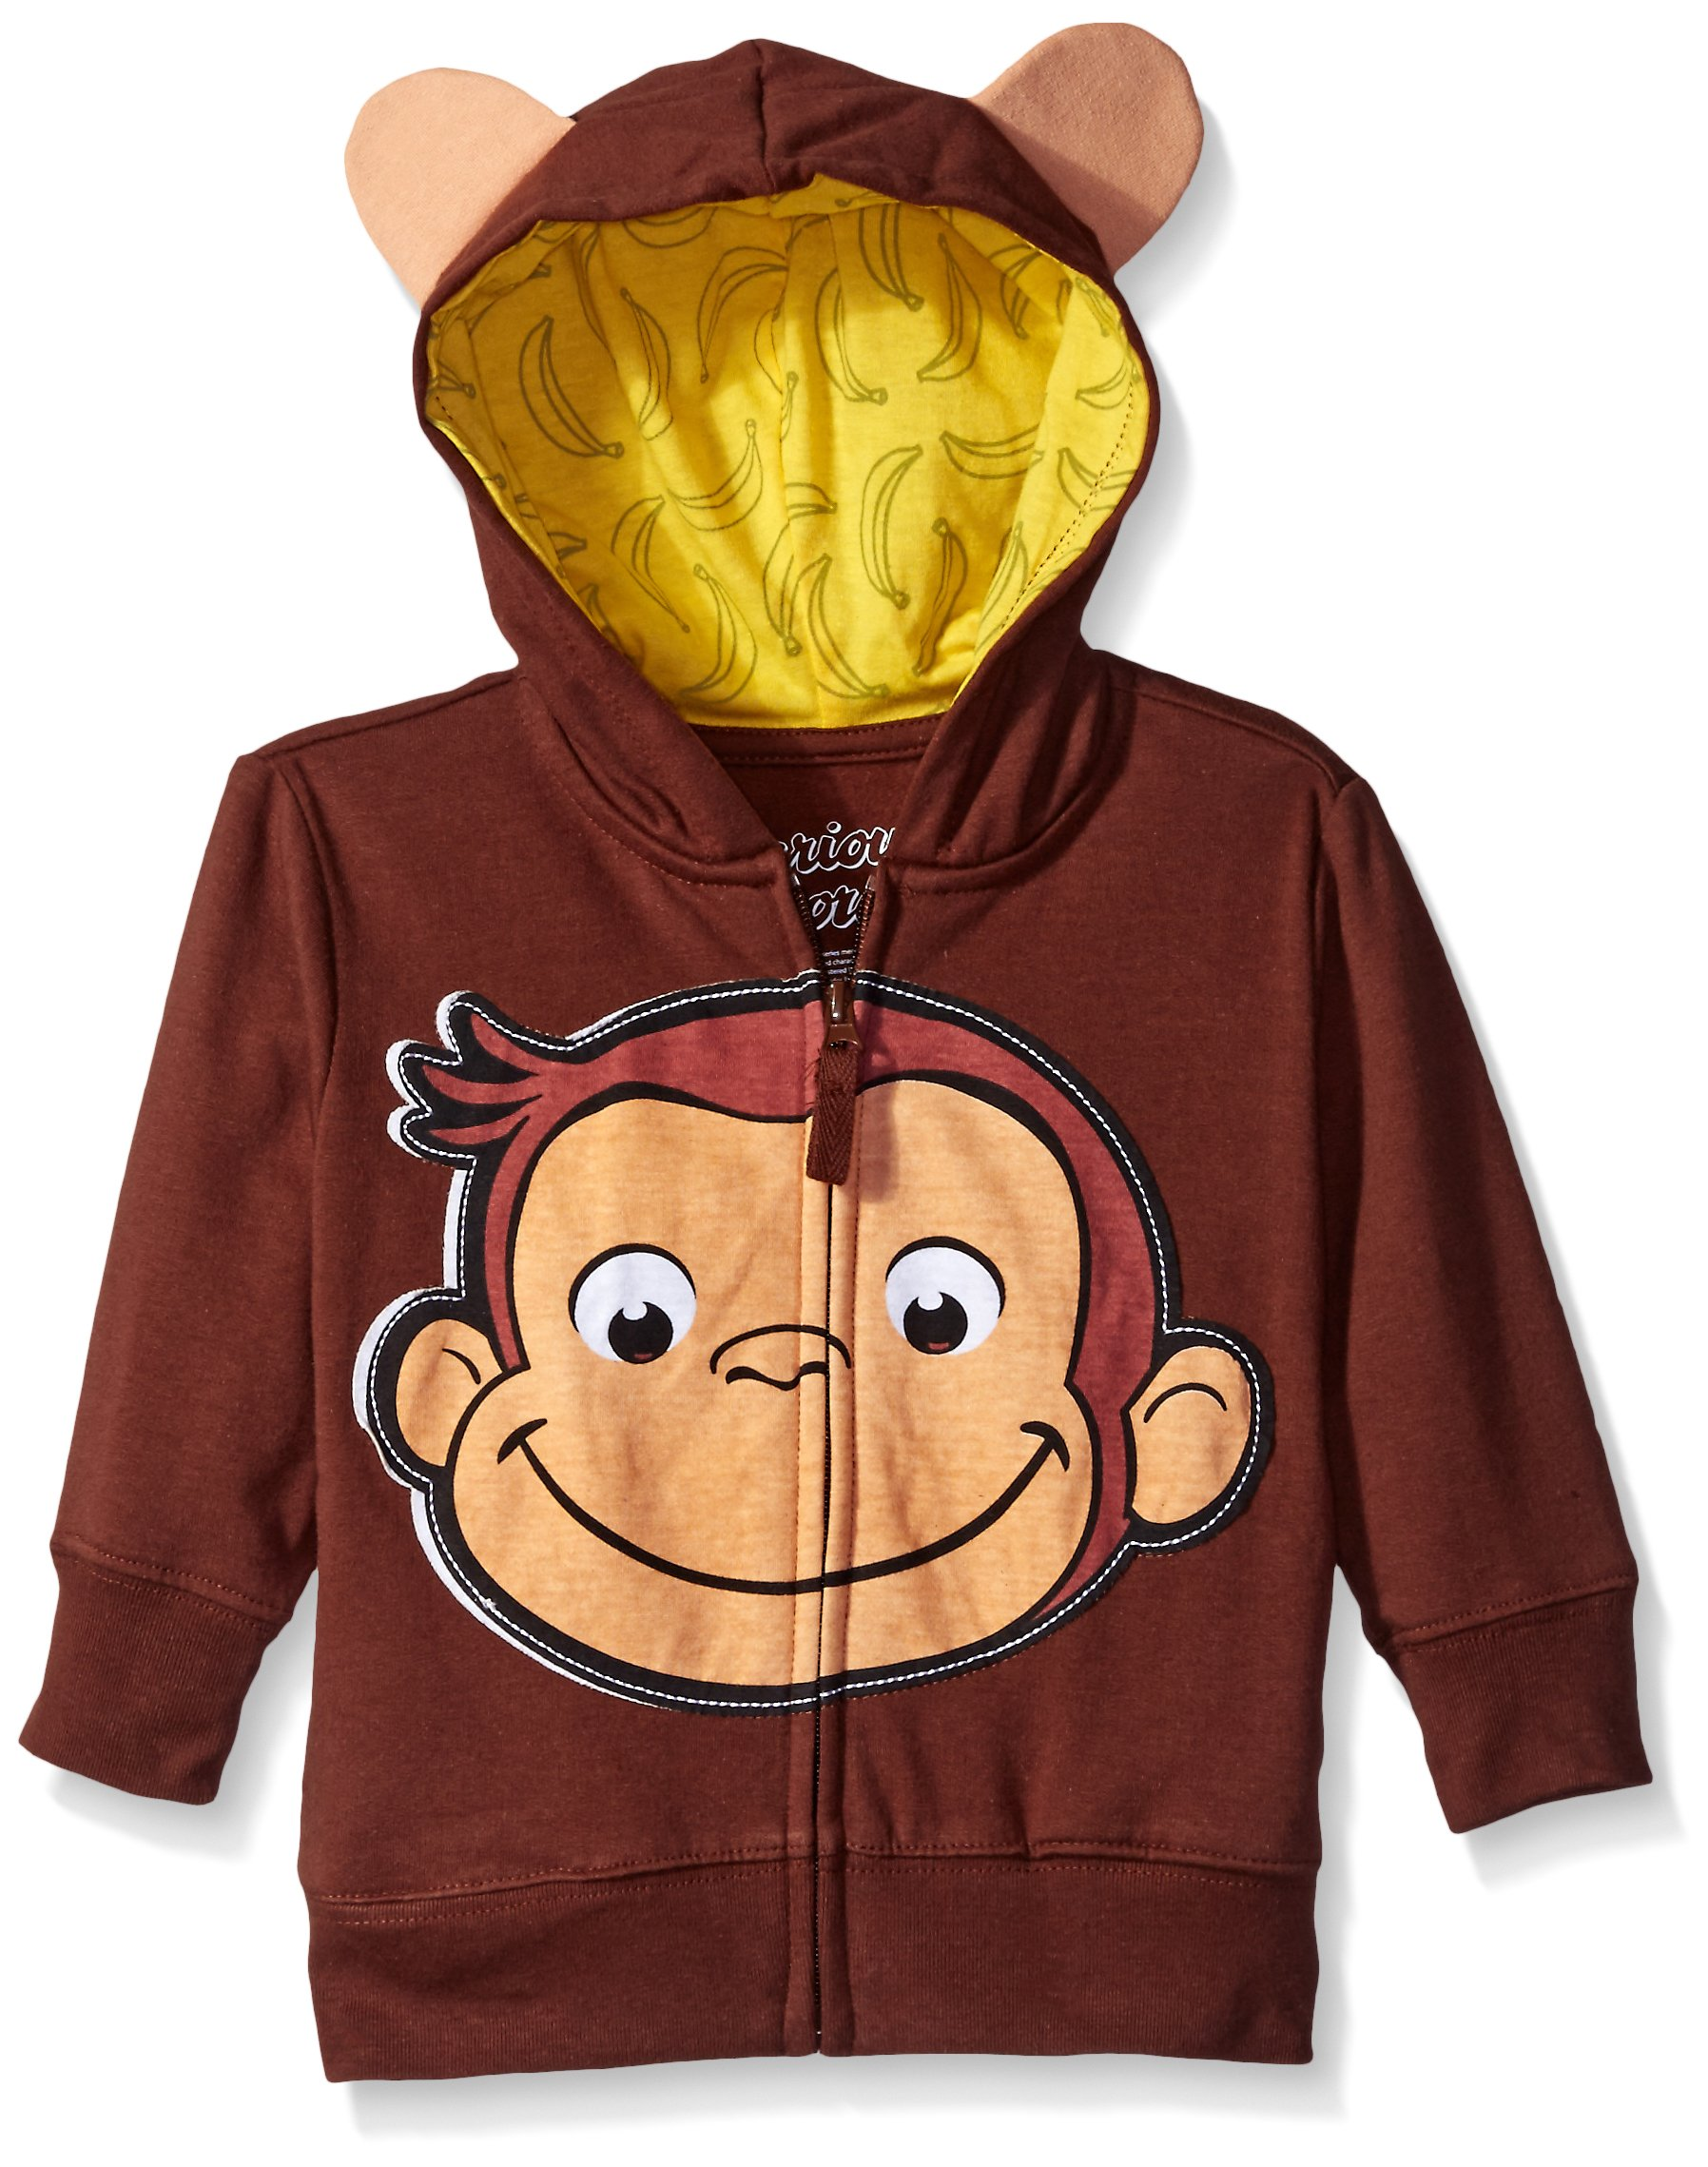 Curious George Little Boys' Toddler Character Hoodie, Brown/Yellow, 3T